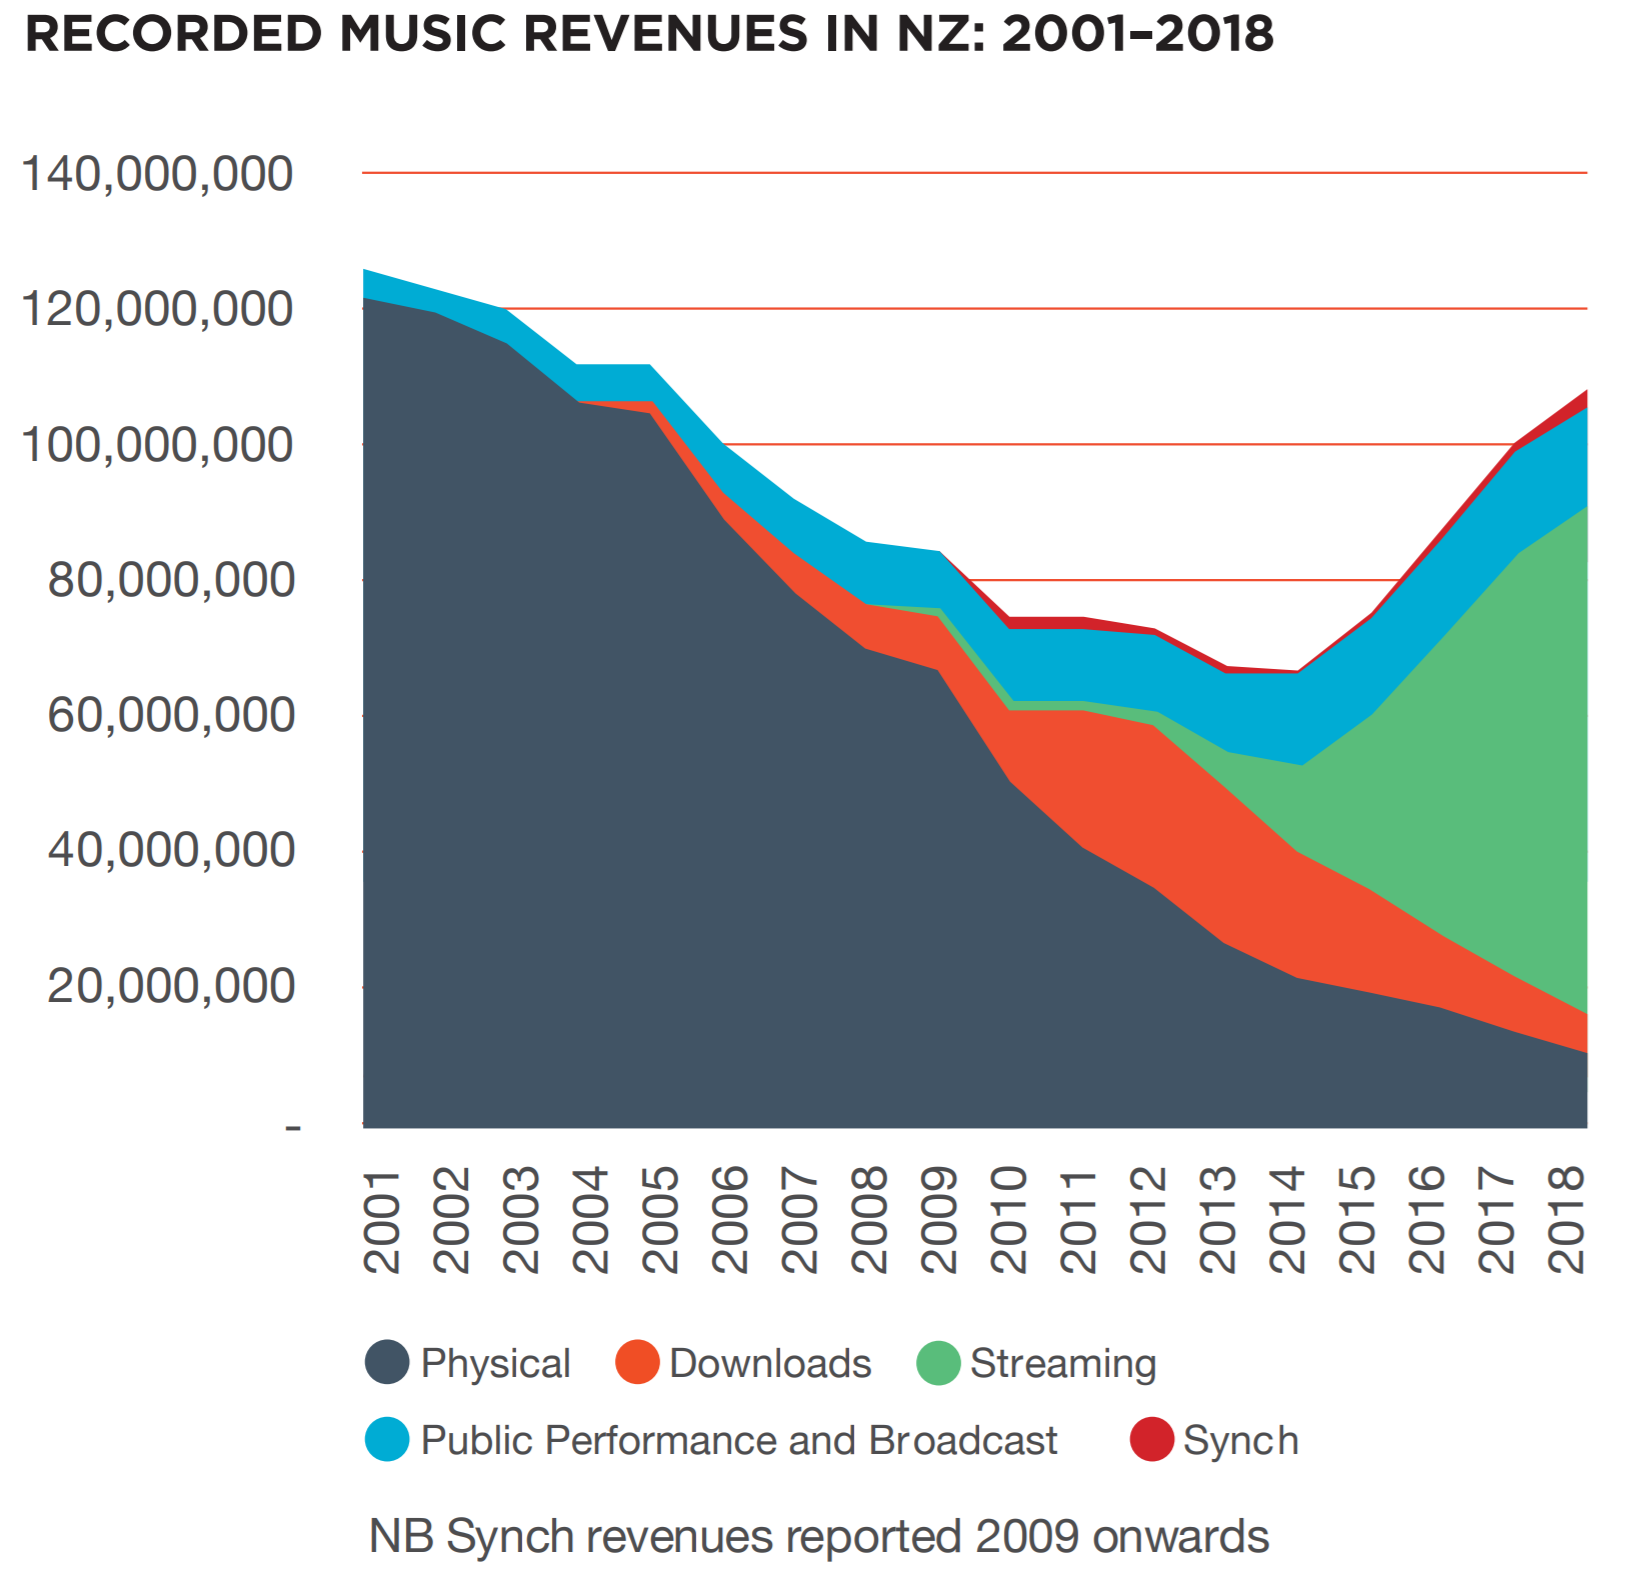 Graph of recorded music revenues in NZ: 2001-2018. Sharp increase of streaming revenue.